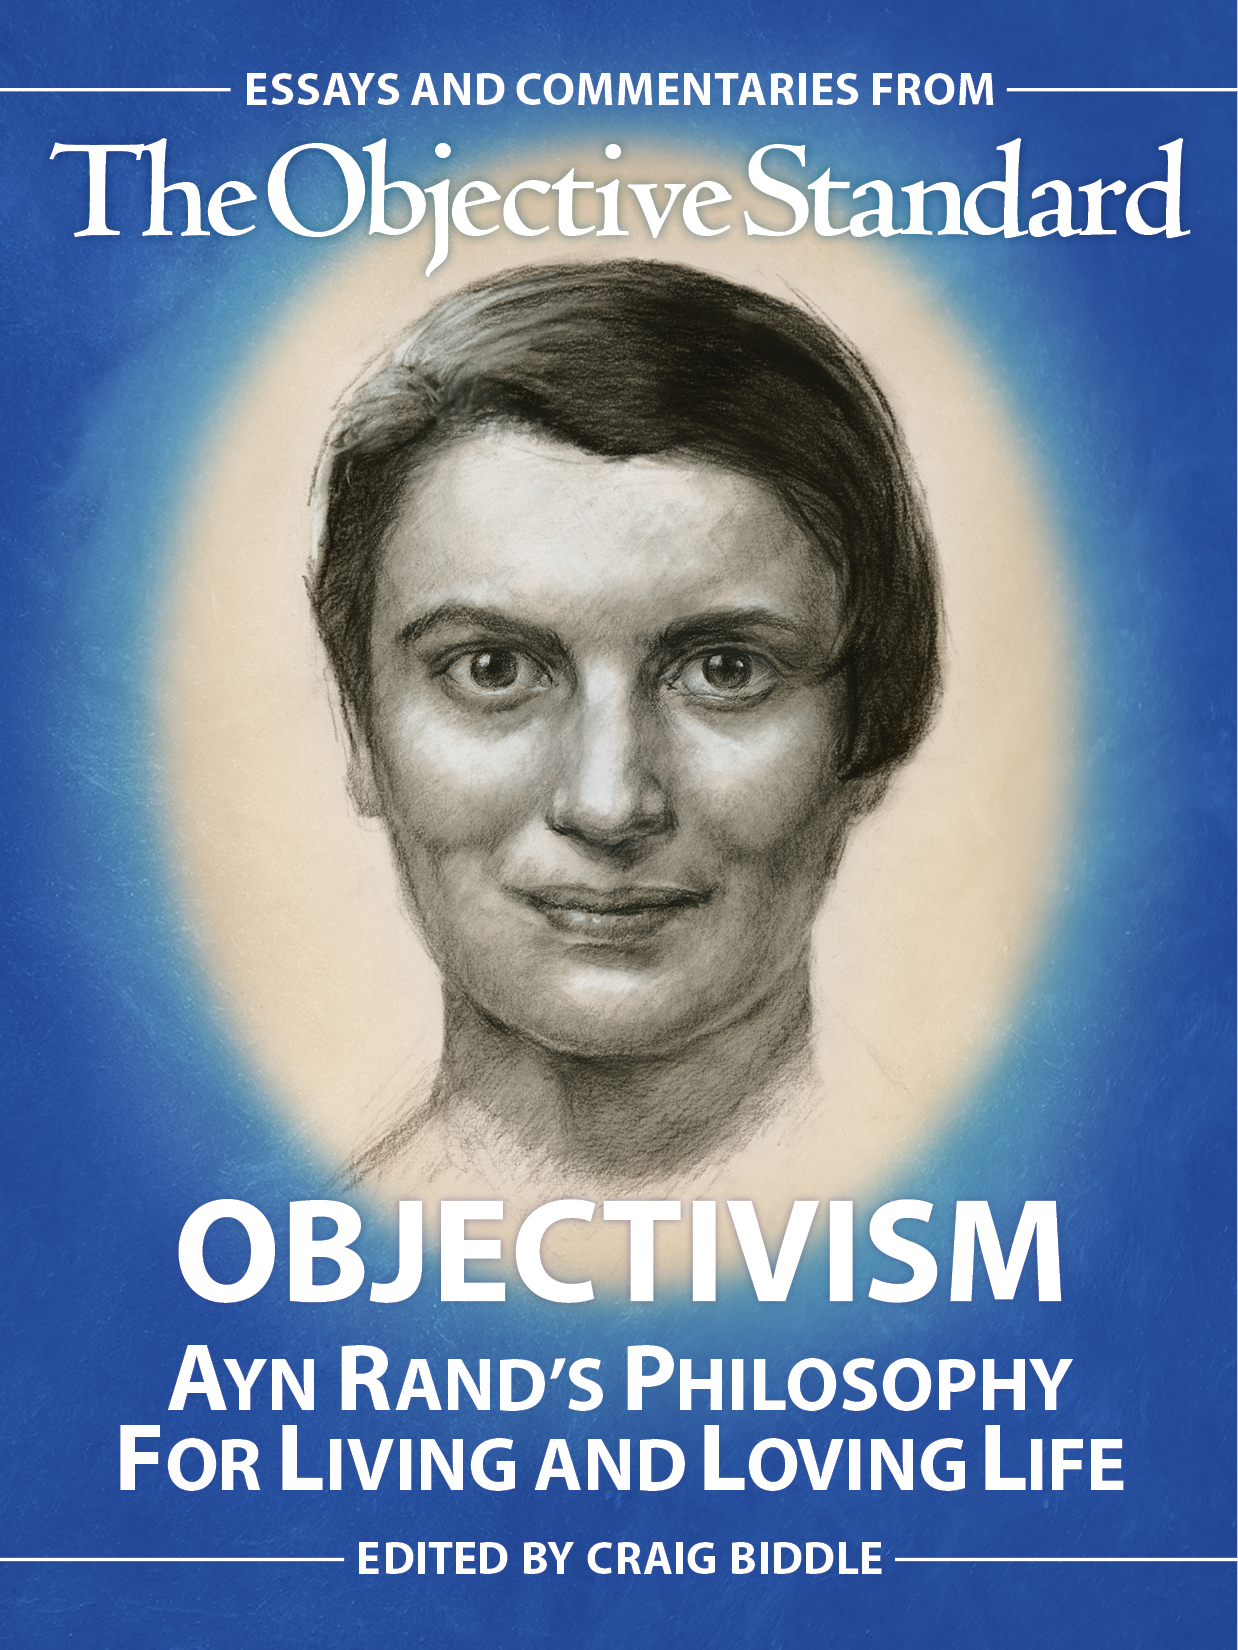 objectivism essays 2007-5-12 im pleased to announce that ayn rands atlas shrugged: a philosophical and literary companion has been published by ashgatethe editor of this book of essays is the indefatigable ed younkinscontributors include (besides ed himself) stephen cox, doug den uyl, doug rasmussen, chris matthew sciabarr.